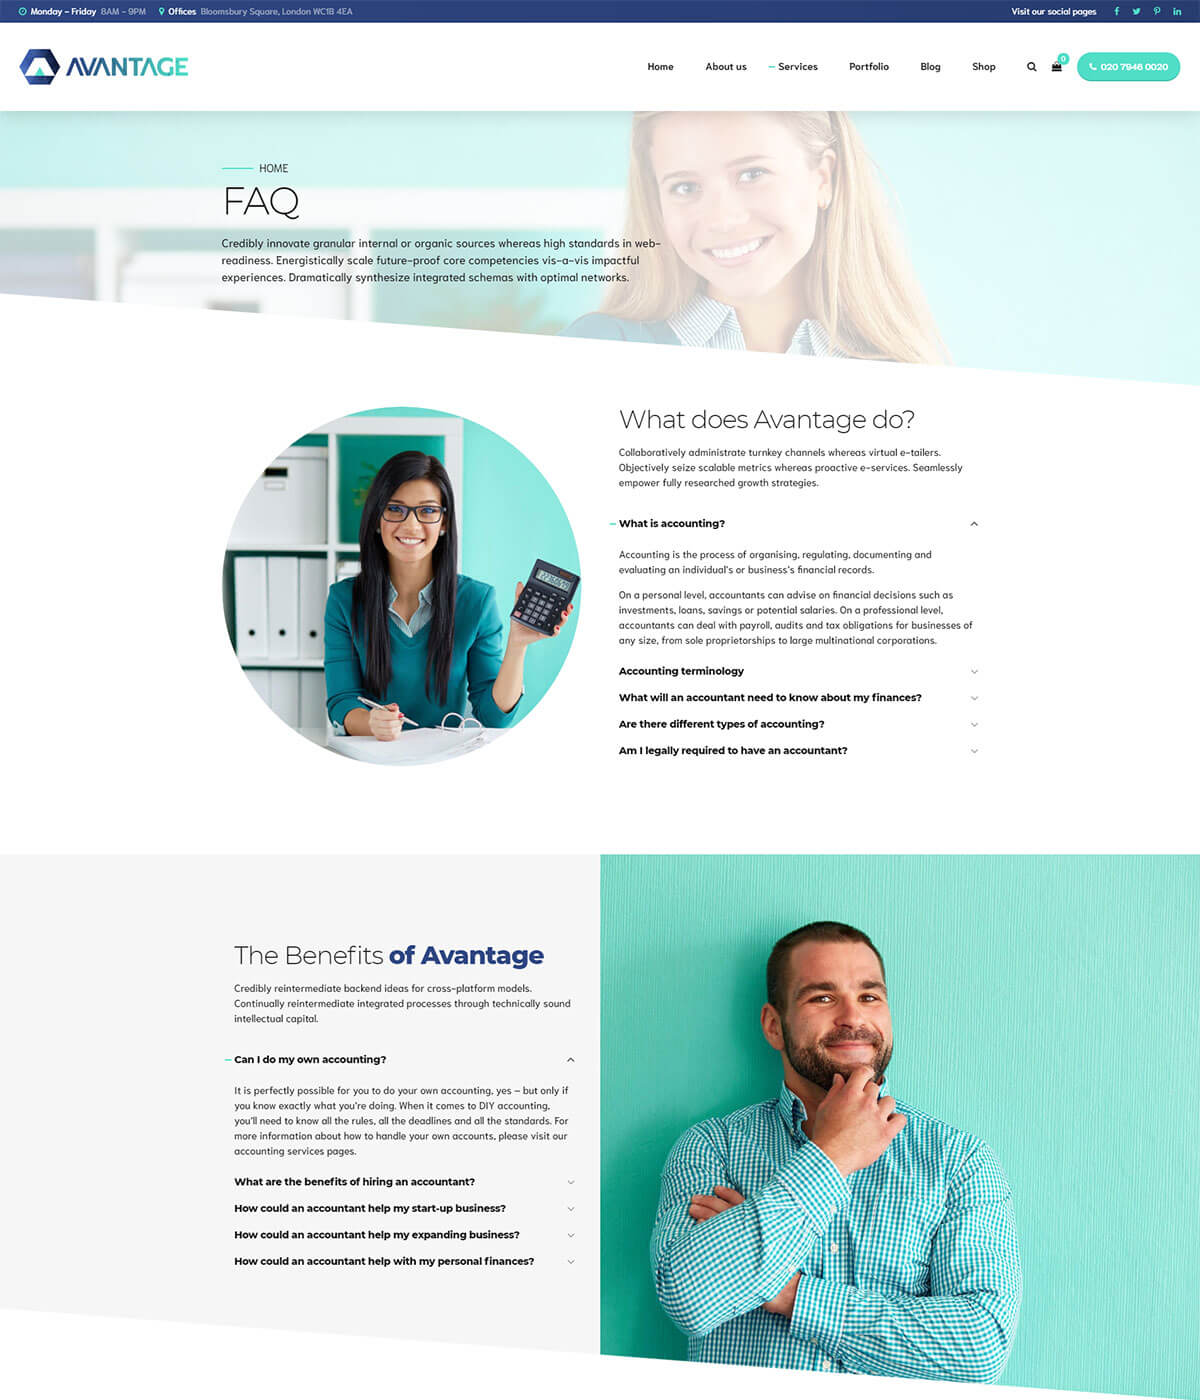 http://avantage.bold-themes.com/wp-content/uploads/2019/05/accountant-11-faq.jpg